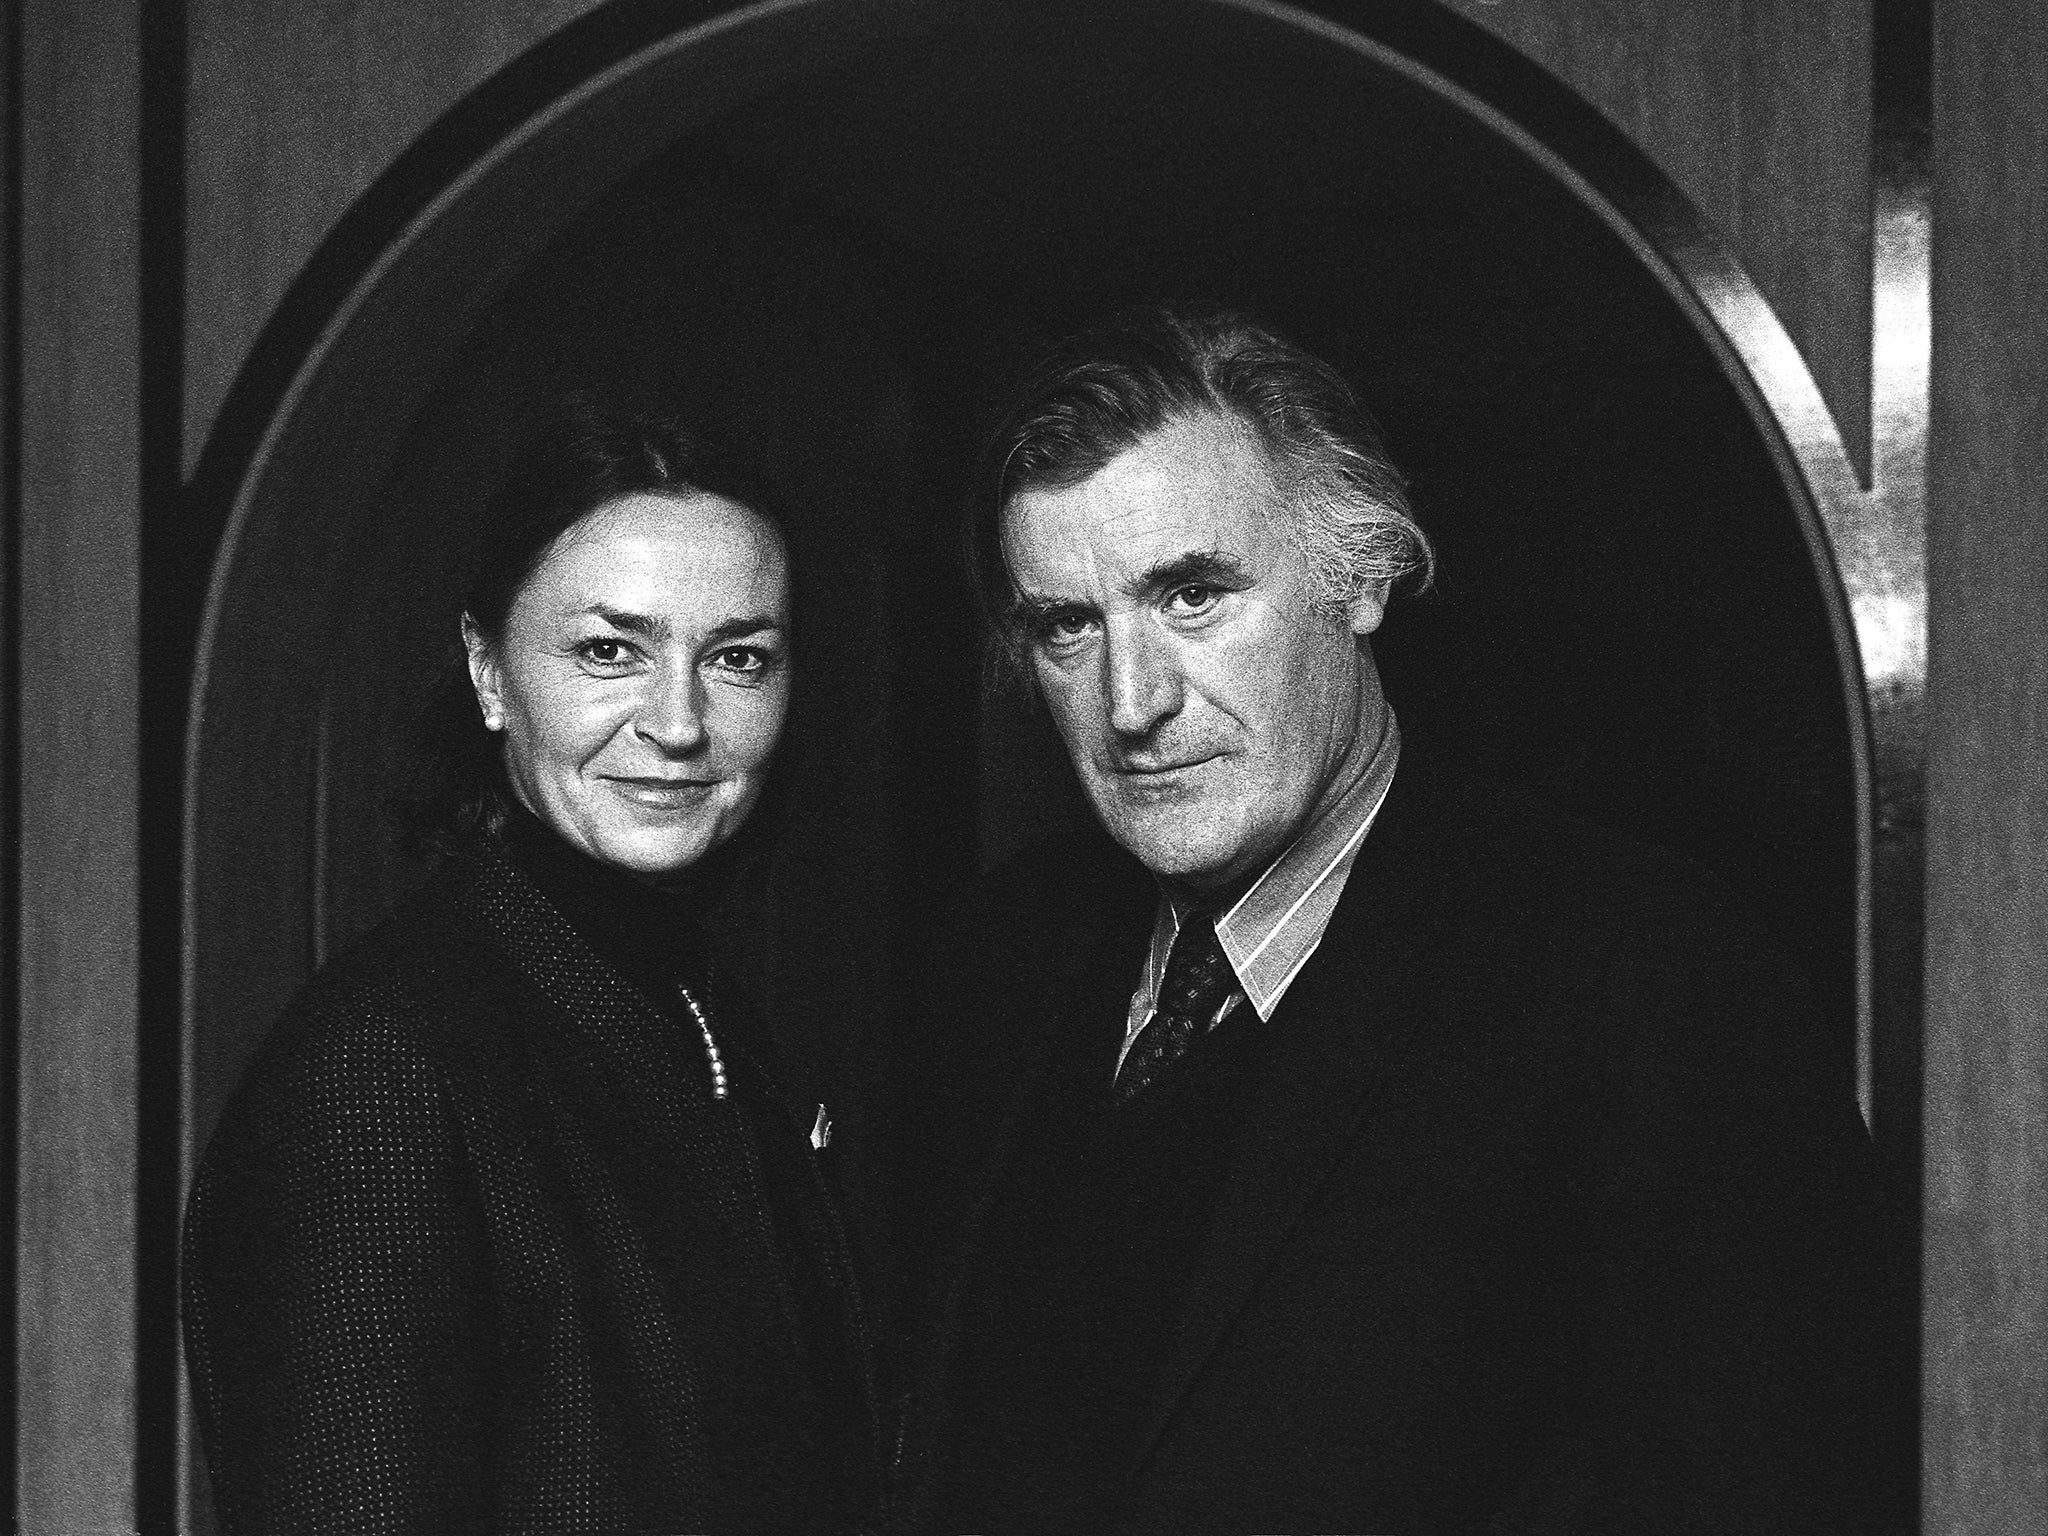 a biography of the life and times of ted hughes Browse through ted hughes's poems and quotes 29 poems of ted hughes still i rise, the road not taken, if you forget me, dreams, annabel lee ted hughes is consistently described as one of the twentieth century's greatest english poets.